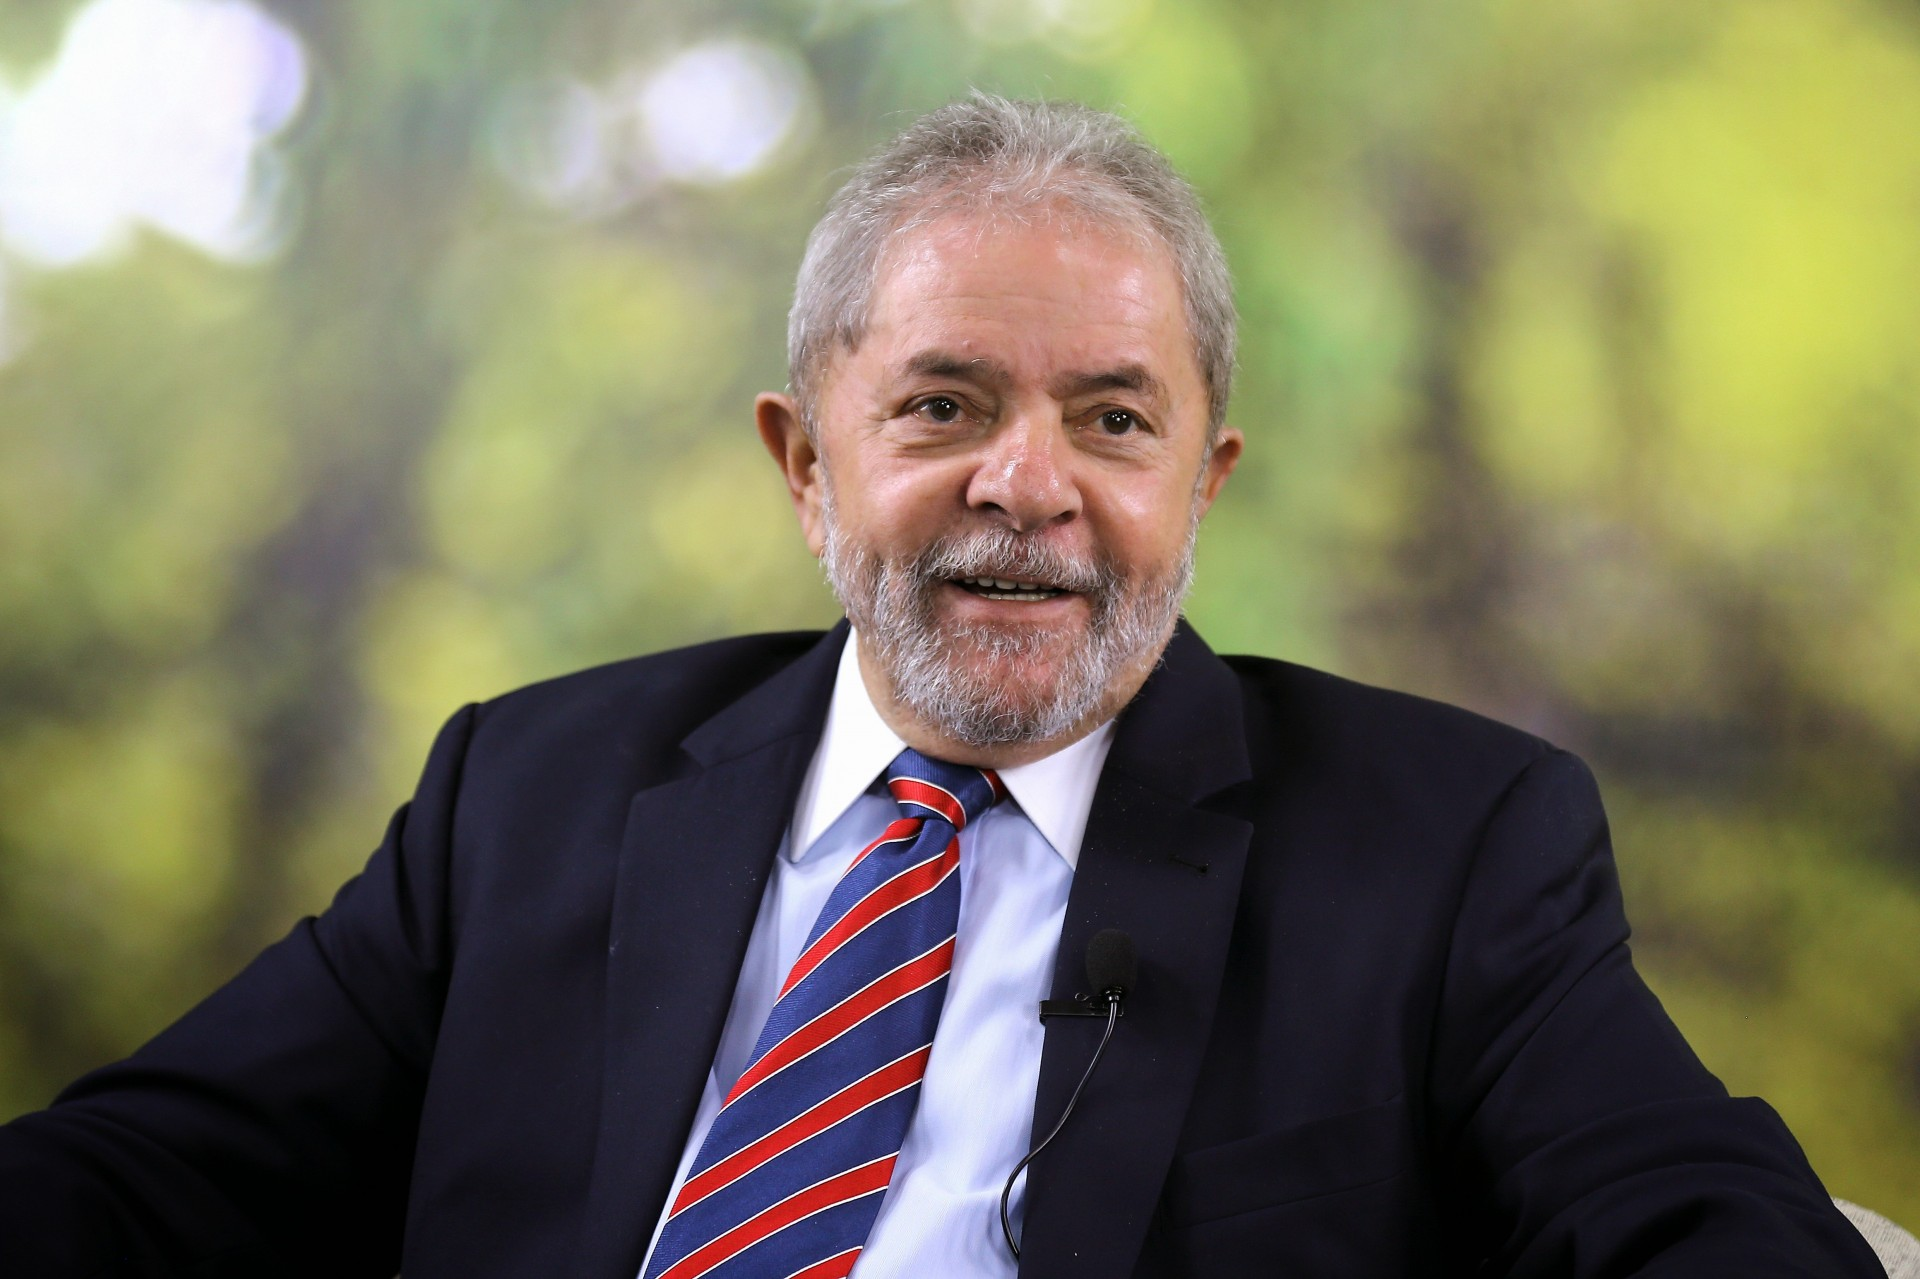 lula_ricardo_stuckert_instituto_lula-790063